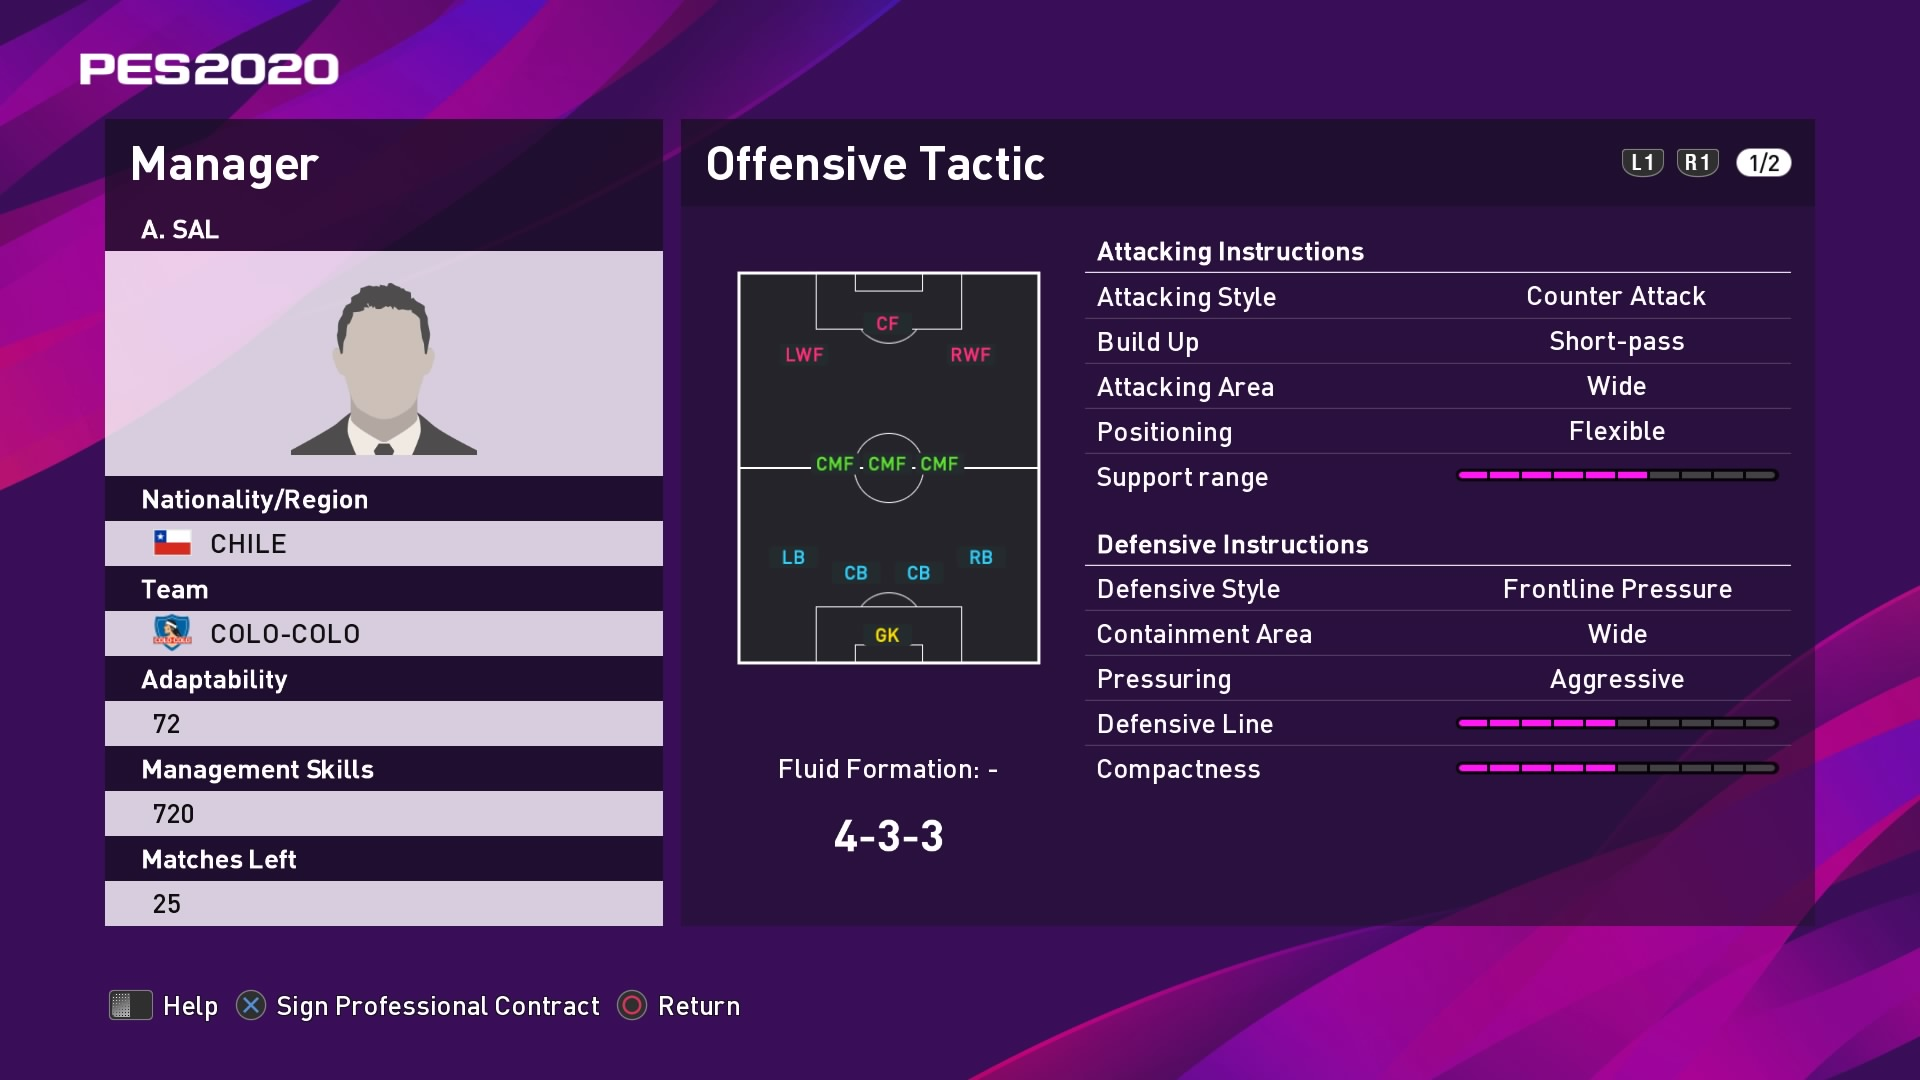 A. Sal (Mario Salas) Offensive Tactic in PES 2020 myClub